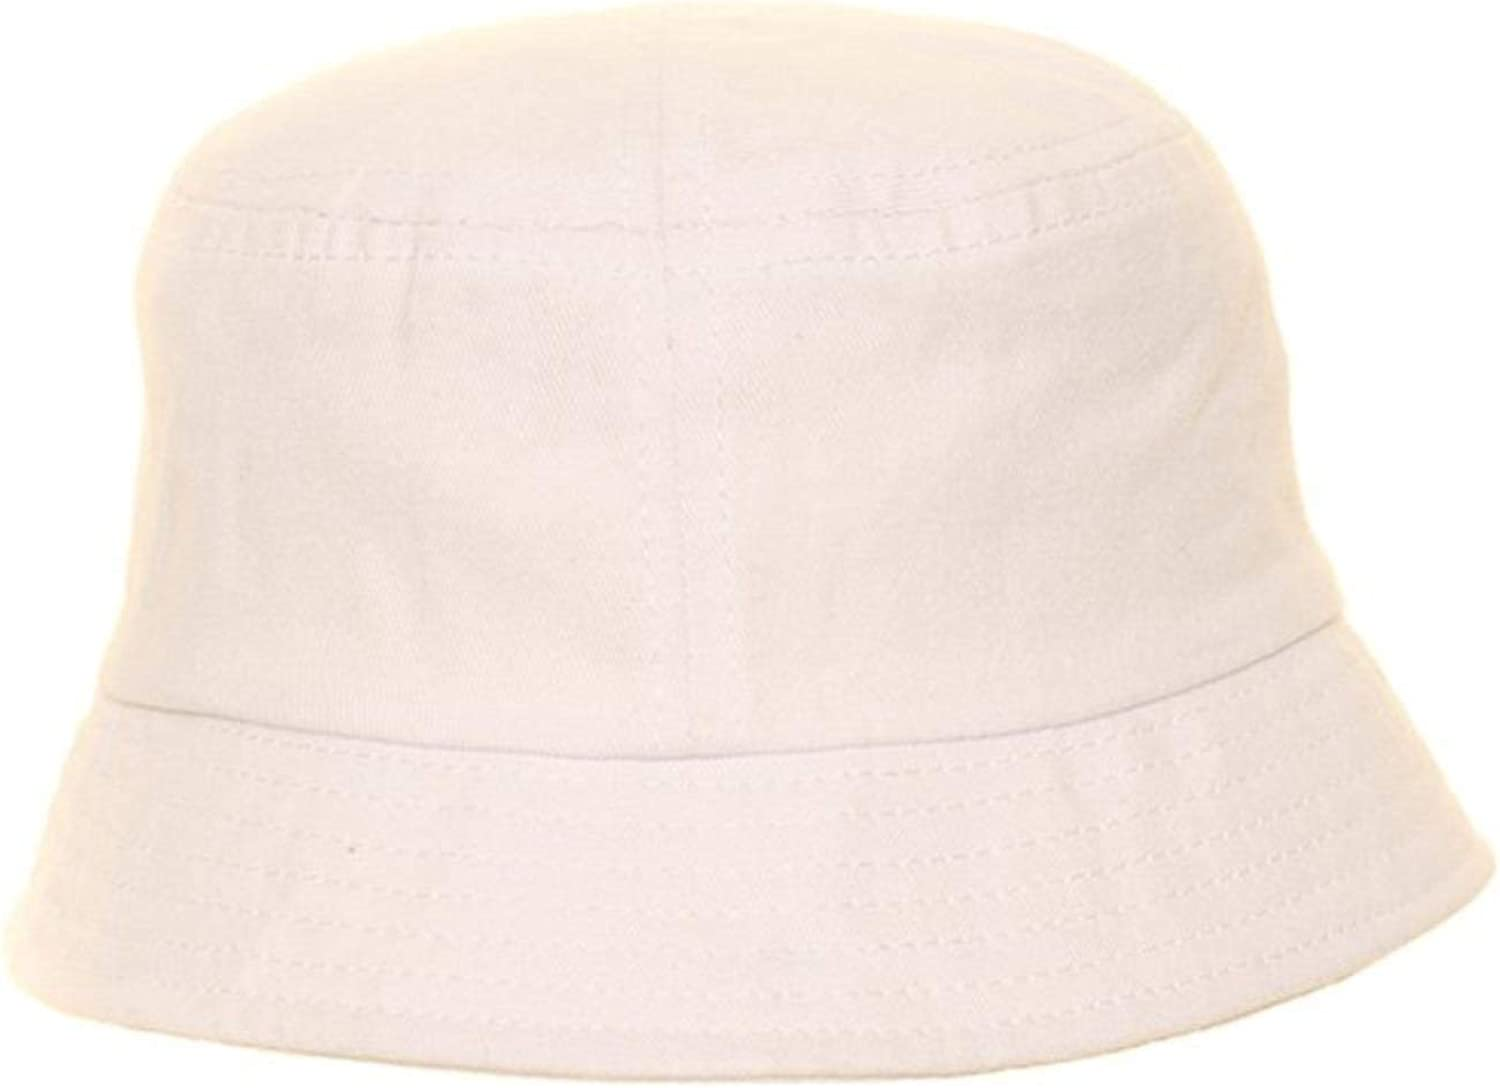 Adventure Togs Bucket Sun Hat with Chin Strap Kids 100/% Cotton Baby Sun Protection Summer